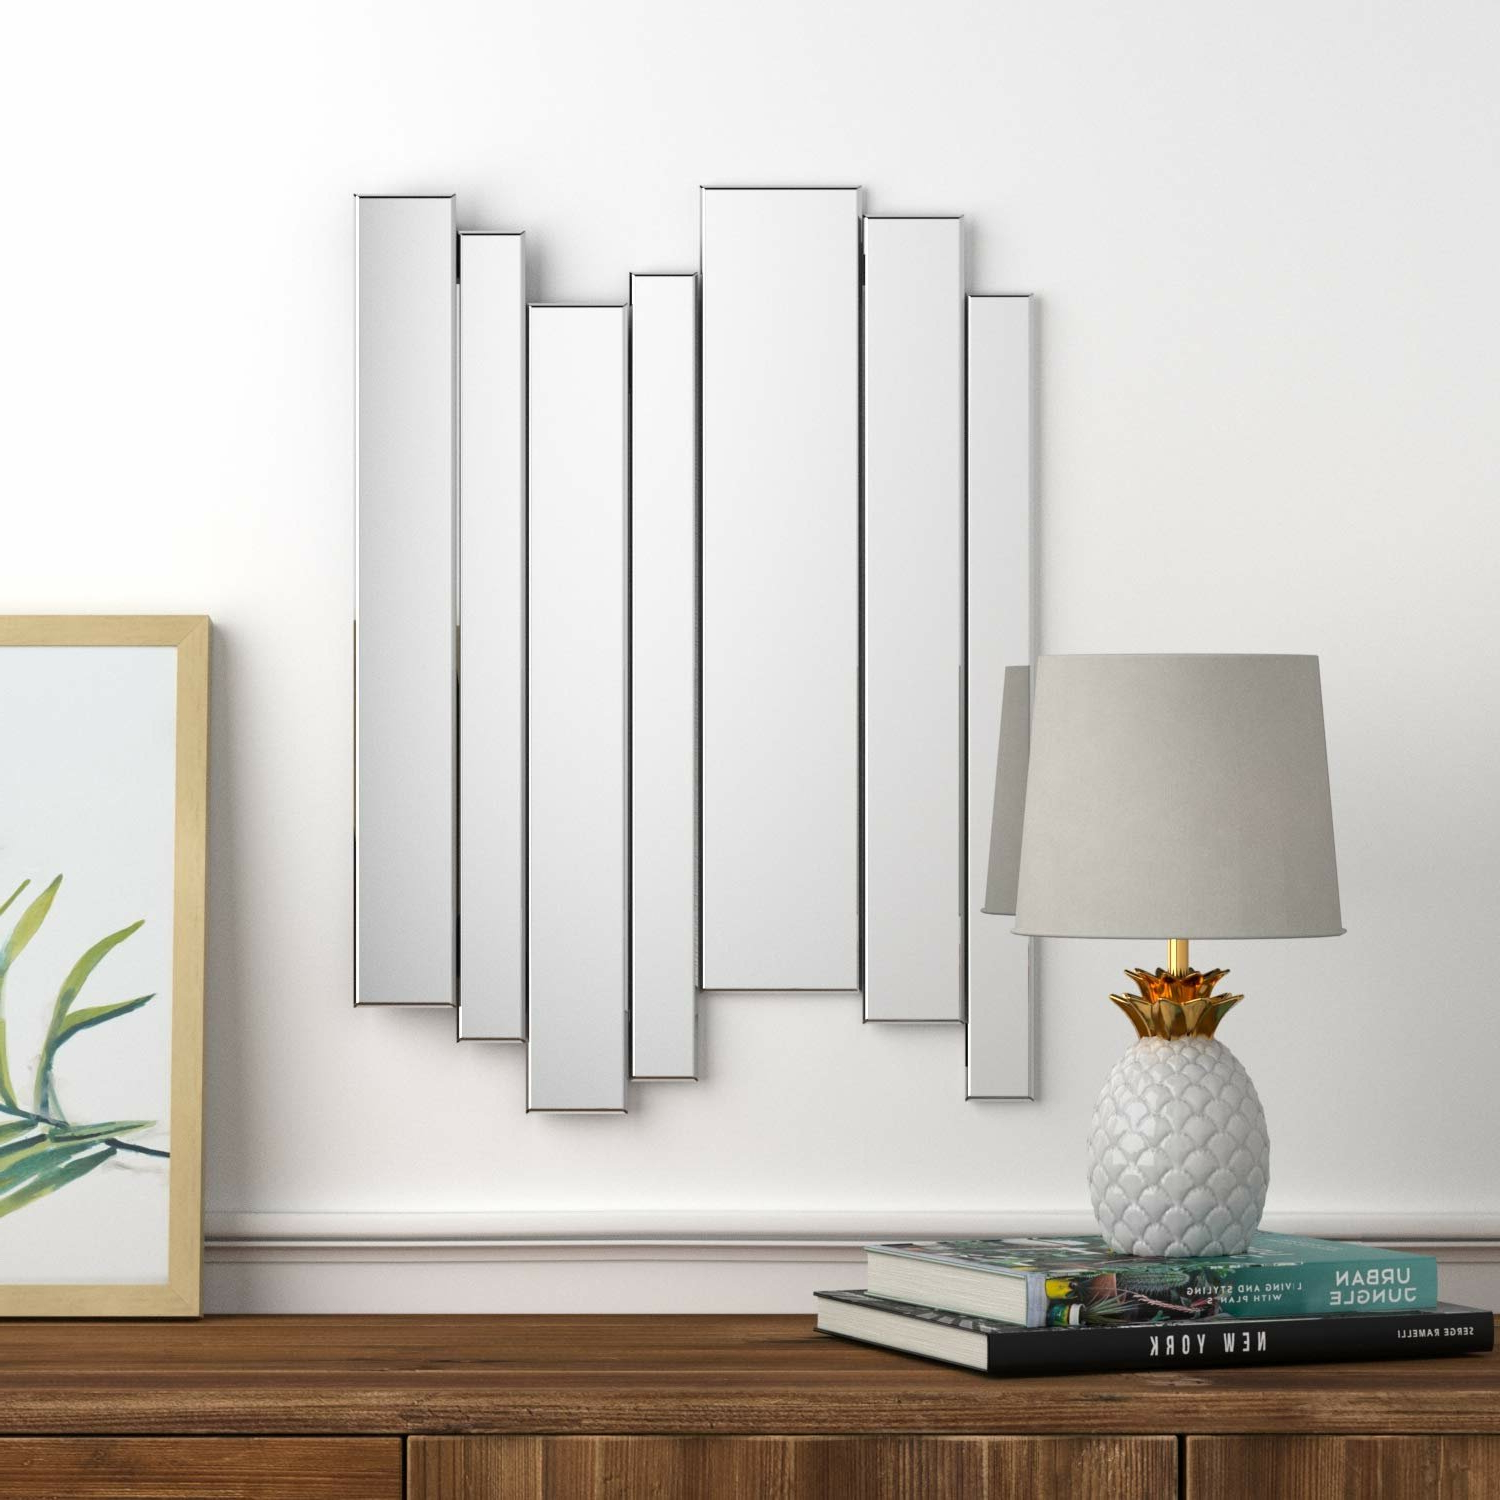 3 Piece Dima Hanging Modern & Contemporary Mirror Sets Throughout 2019 7 Piece Strip Modern Frameless Mirror Set (Gallery 6 of 20)